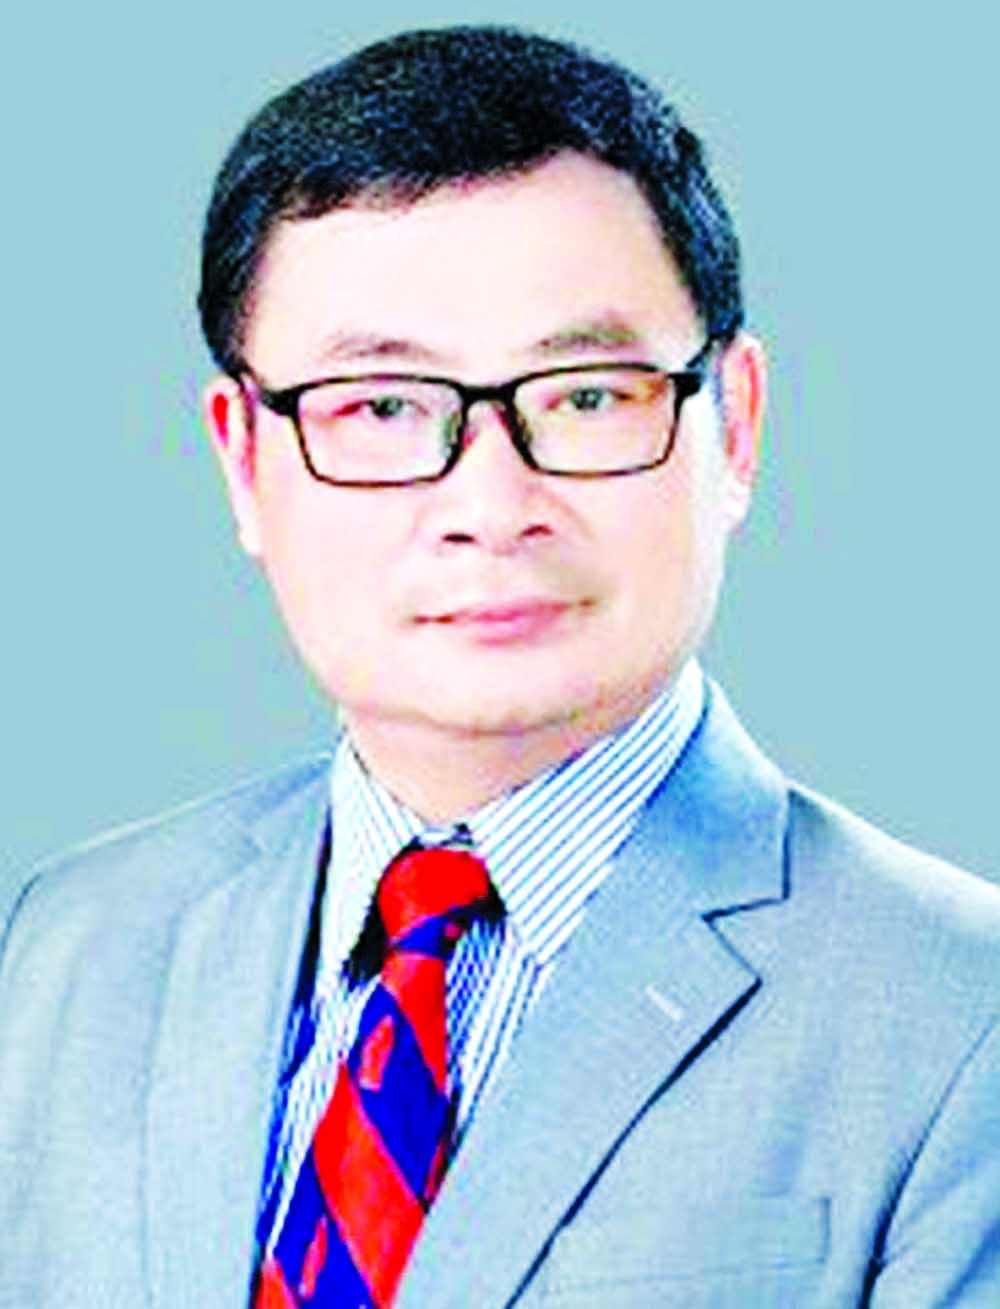 Coca-Cola (BD) appoints Tung as MD